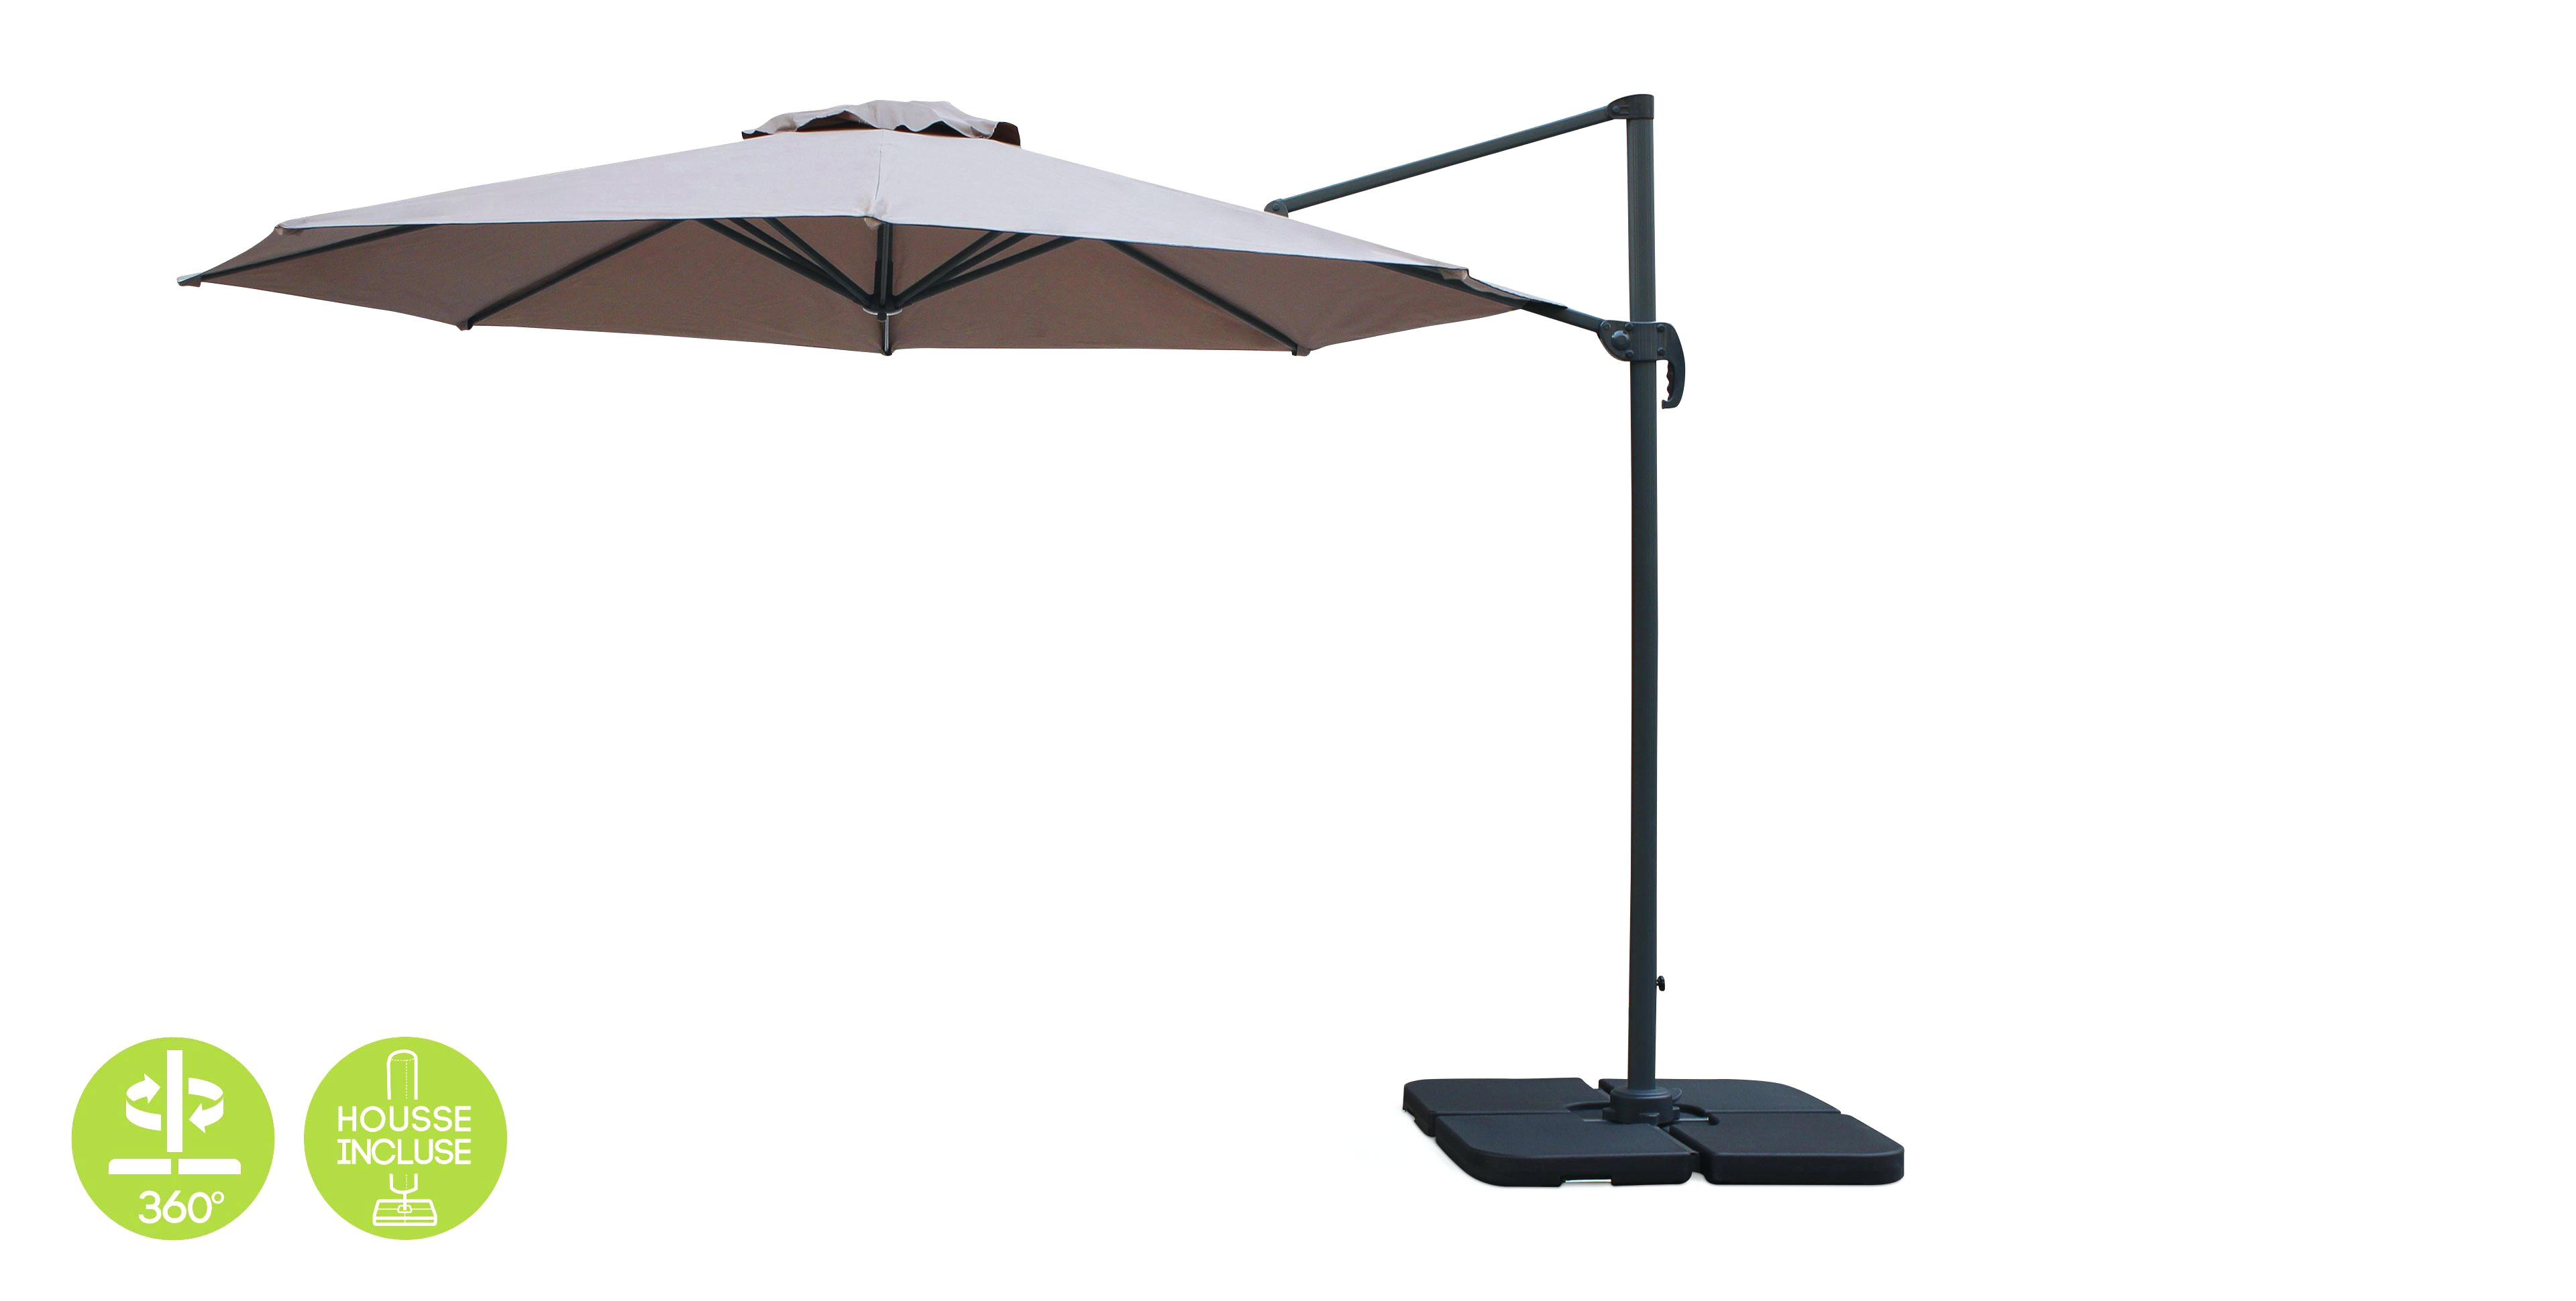 Castorama Parasol Parasol Rectangulaire Inclinable Castorama Beau Photos Parasol